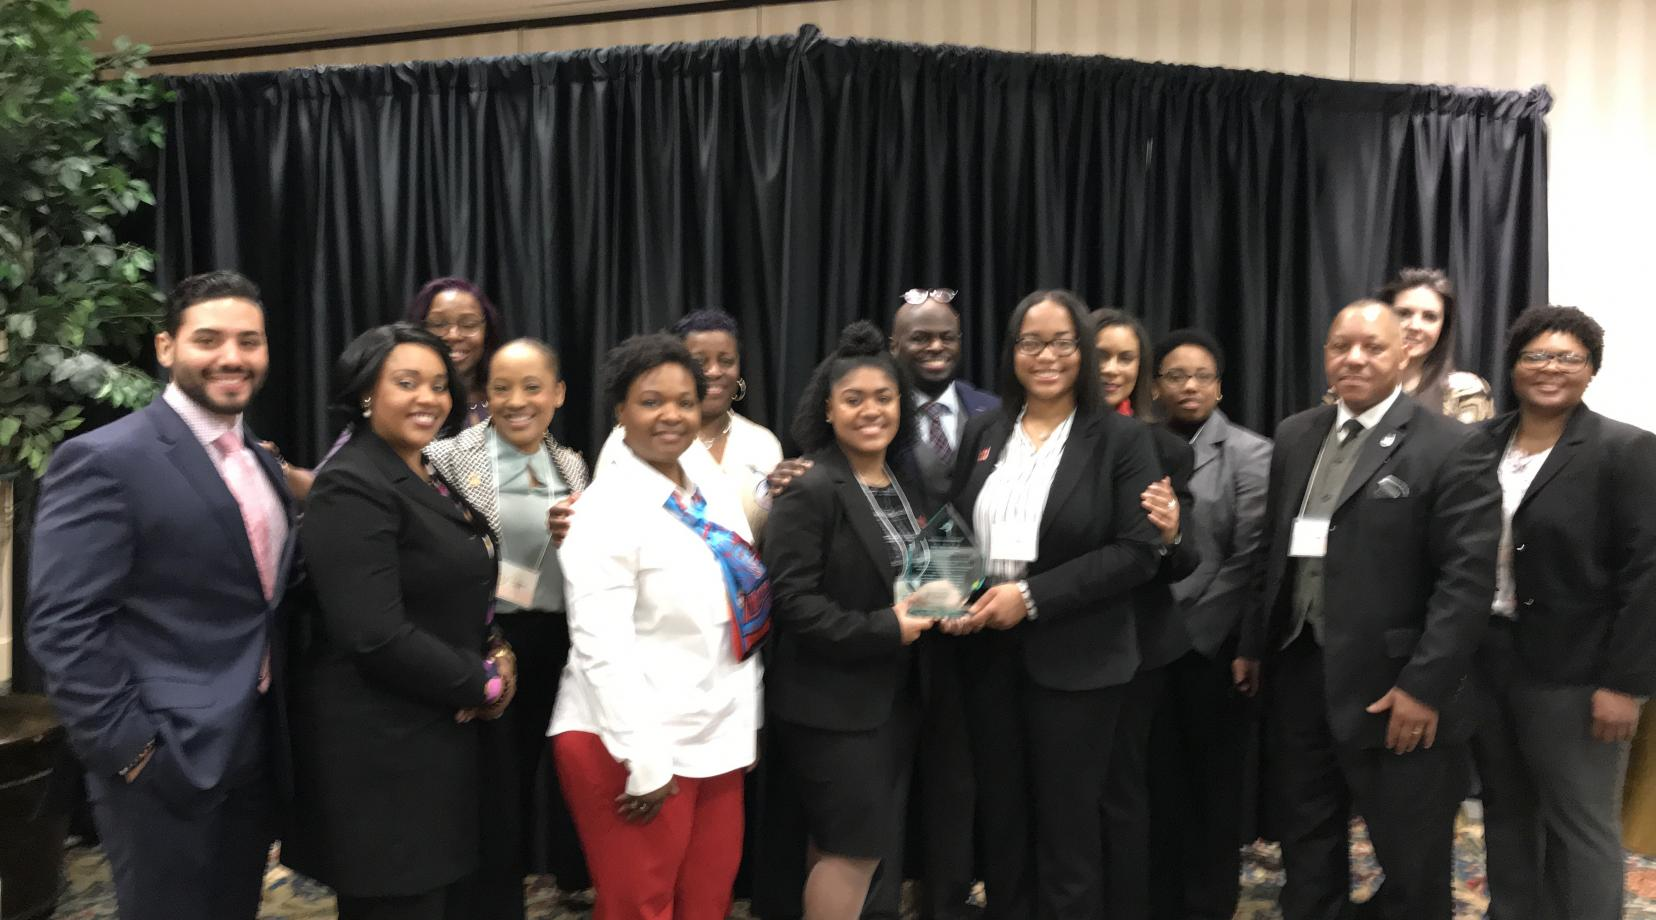 <p>A team of University members represented the institution well at the recent HBCU Retention Summit in Ocean City, Md. , with a number serving as panelists and presenters.</p>